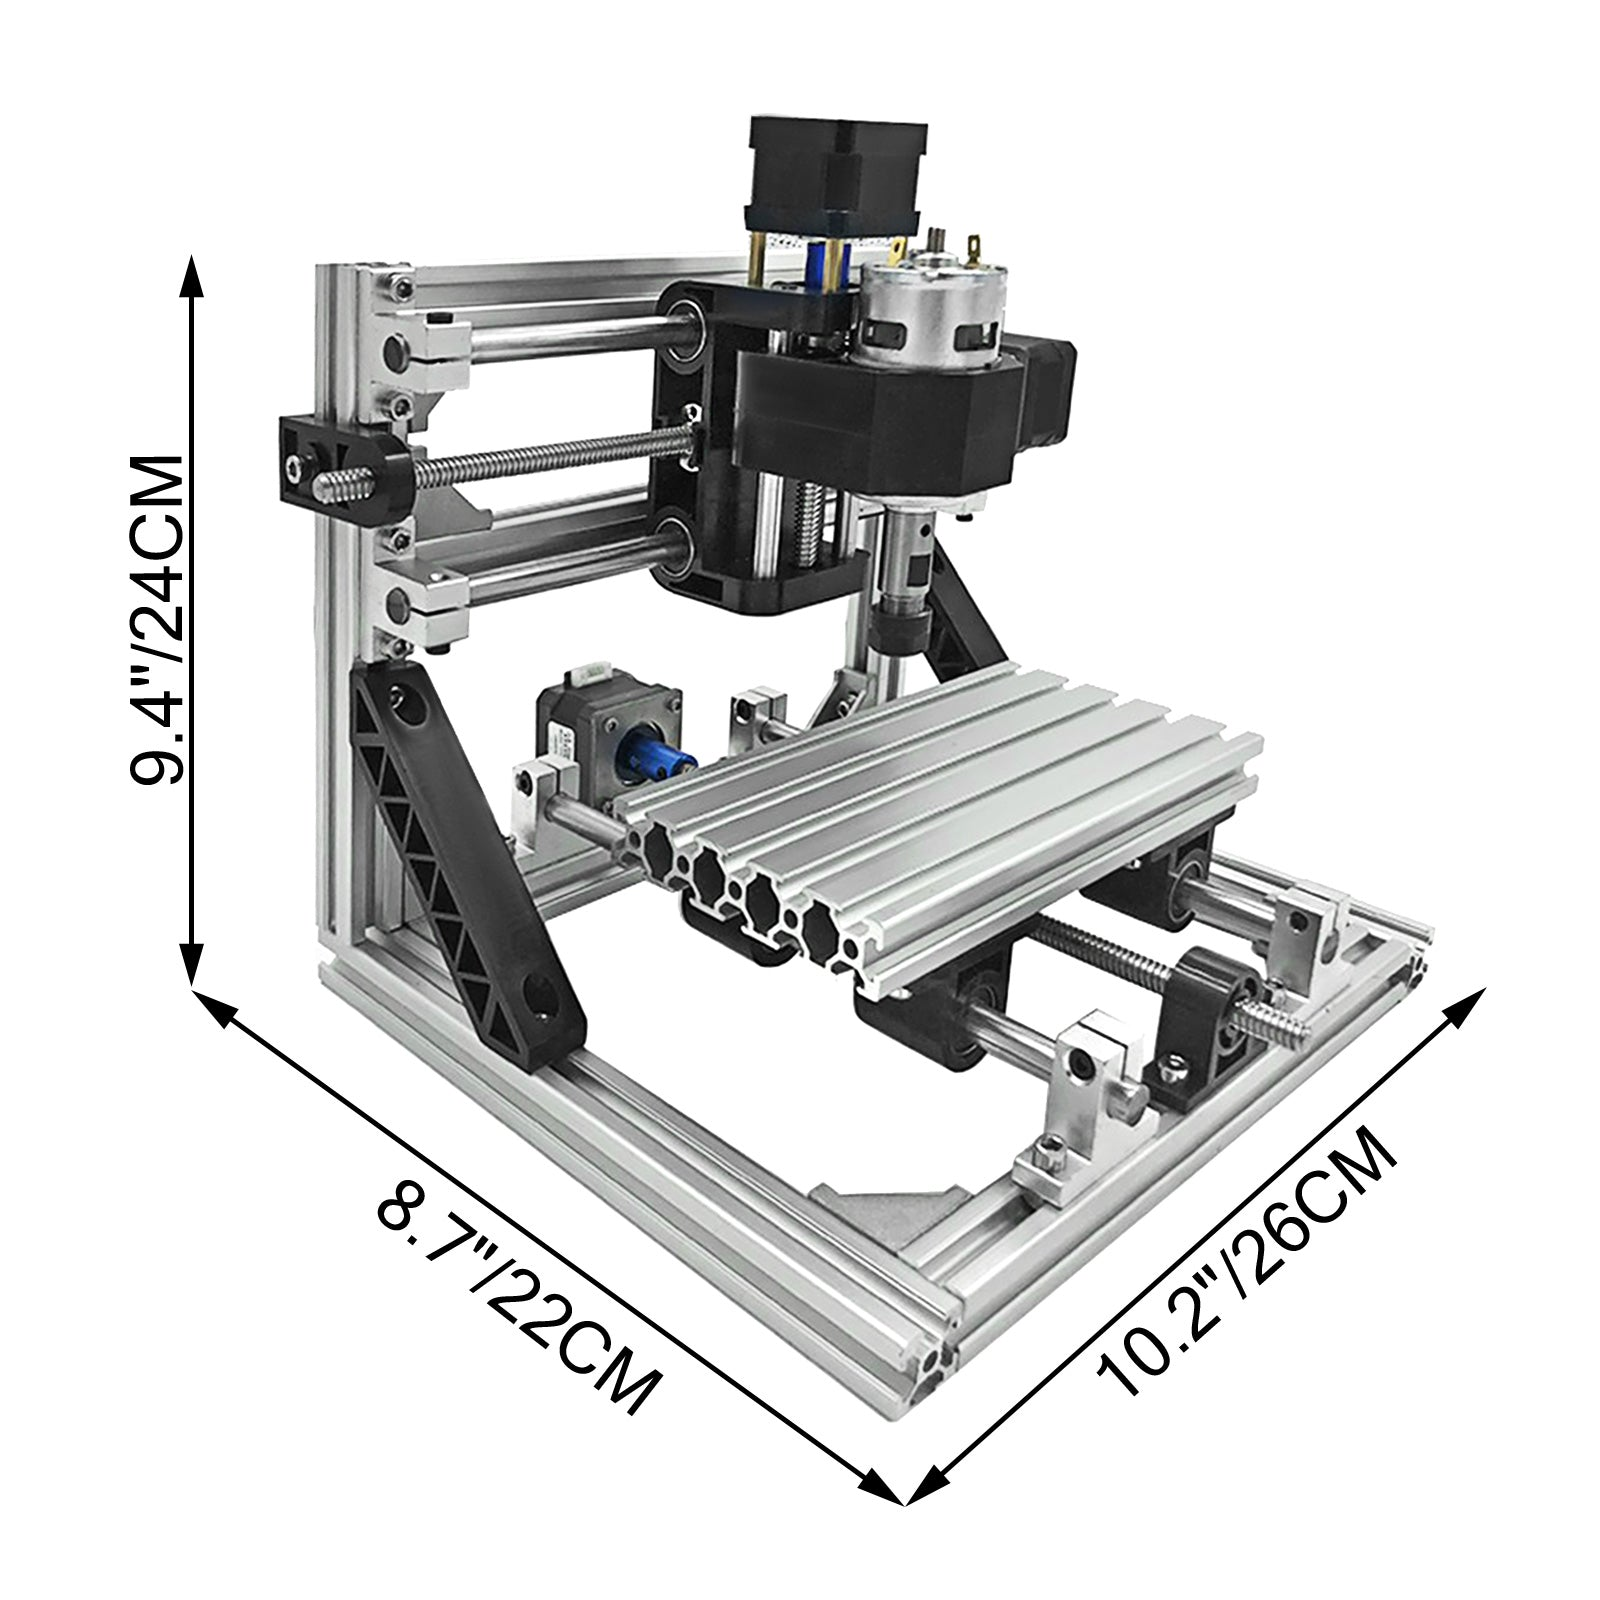 3 Axis Cnc Router Kit 1610 With 5500mw Laser Diy Aluminium Milling Engraver Usb